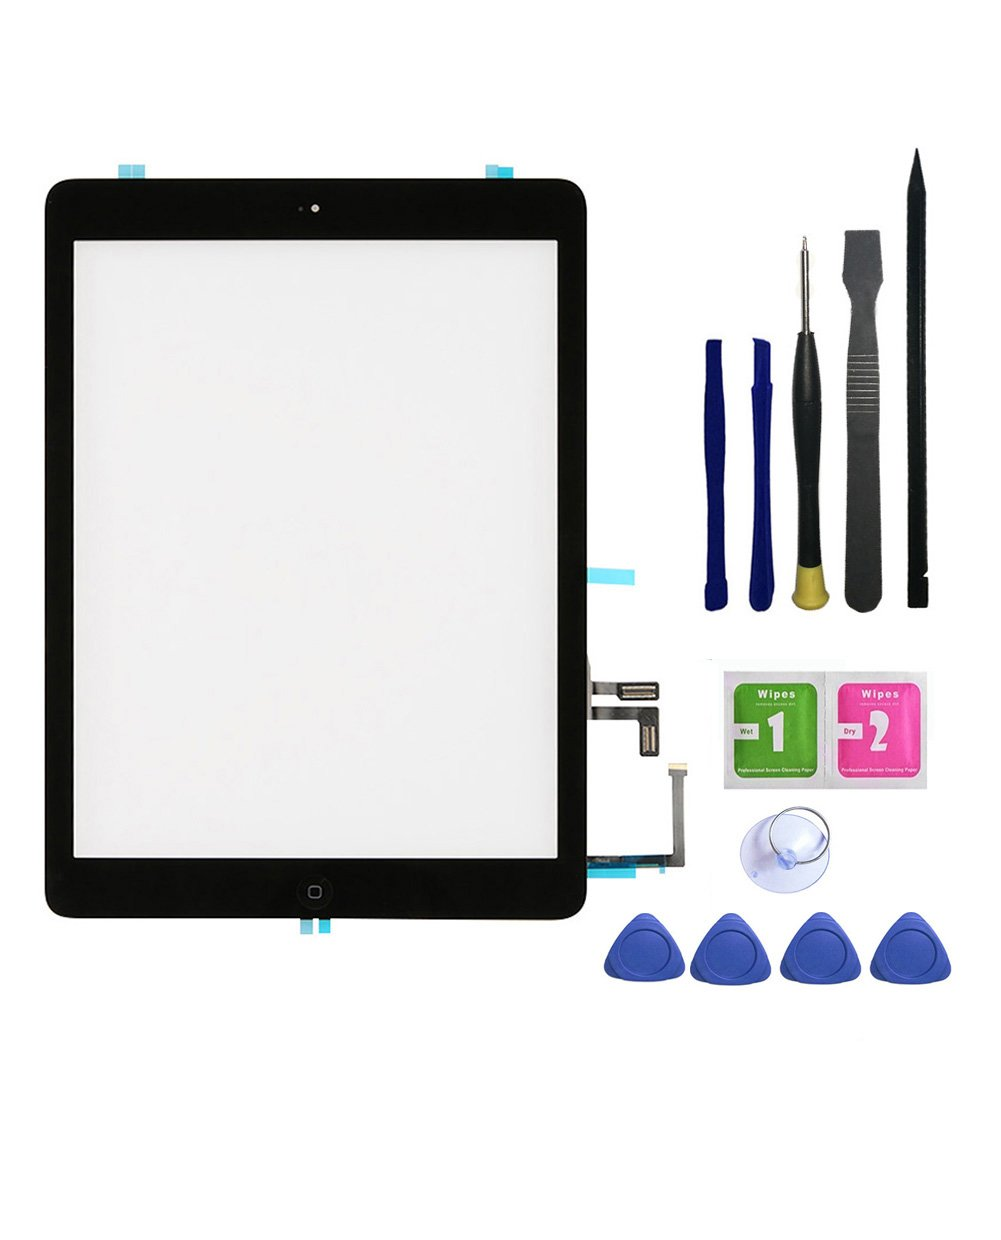 FeiyueTech Ipad 5 Ipad Air 1st Touch Screen Digitizer Replacement ,Front Glass Assembly -Includes Home Button + Camera Holder+PreInstalled Adhesive with tools kit . (black)